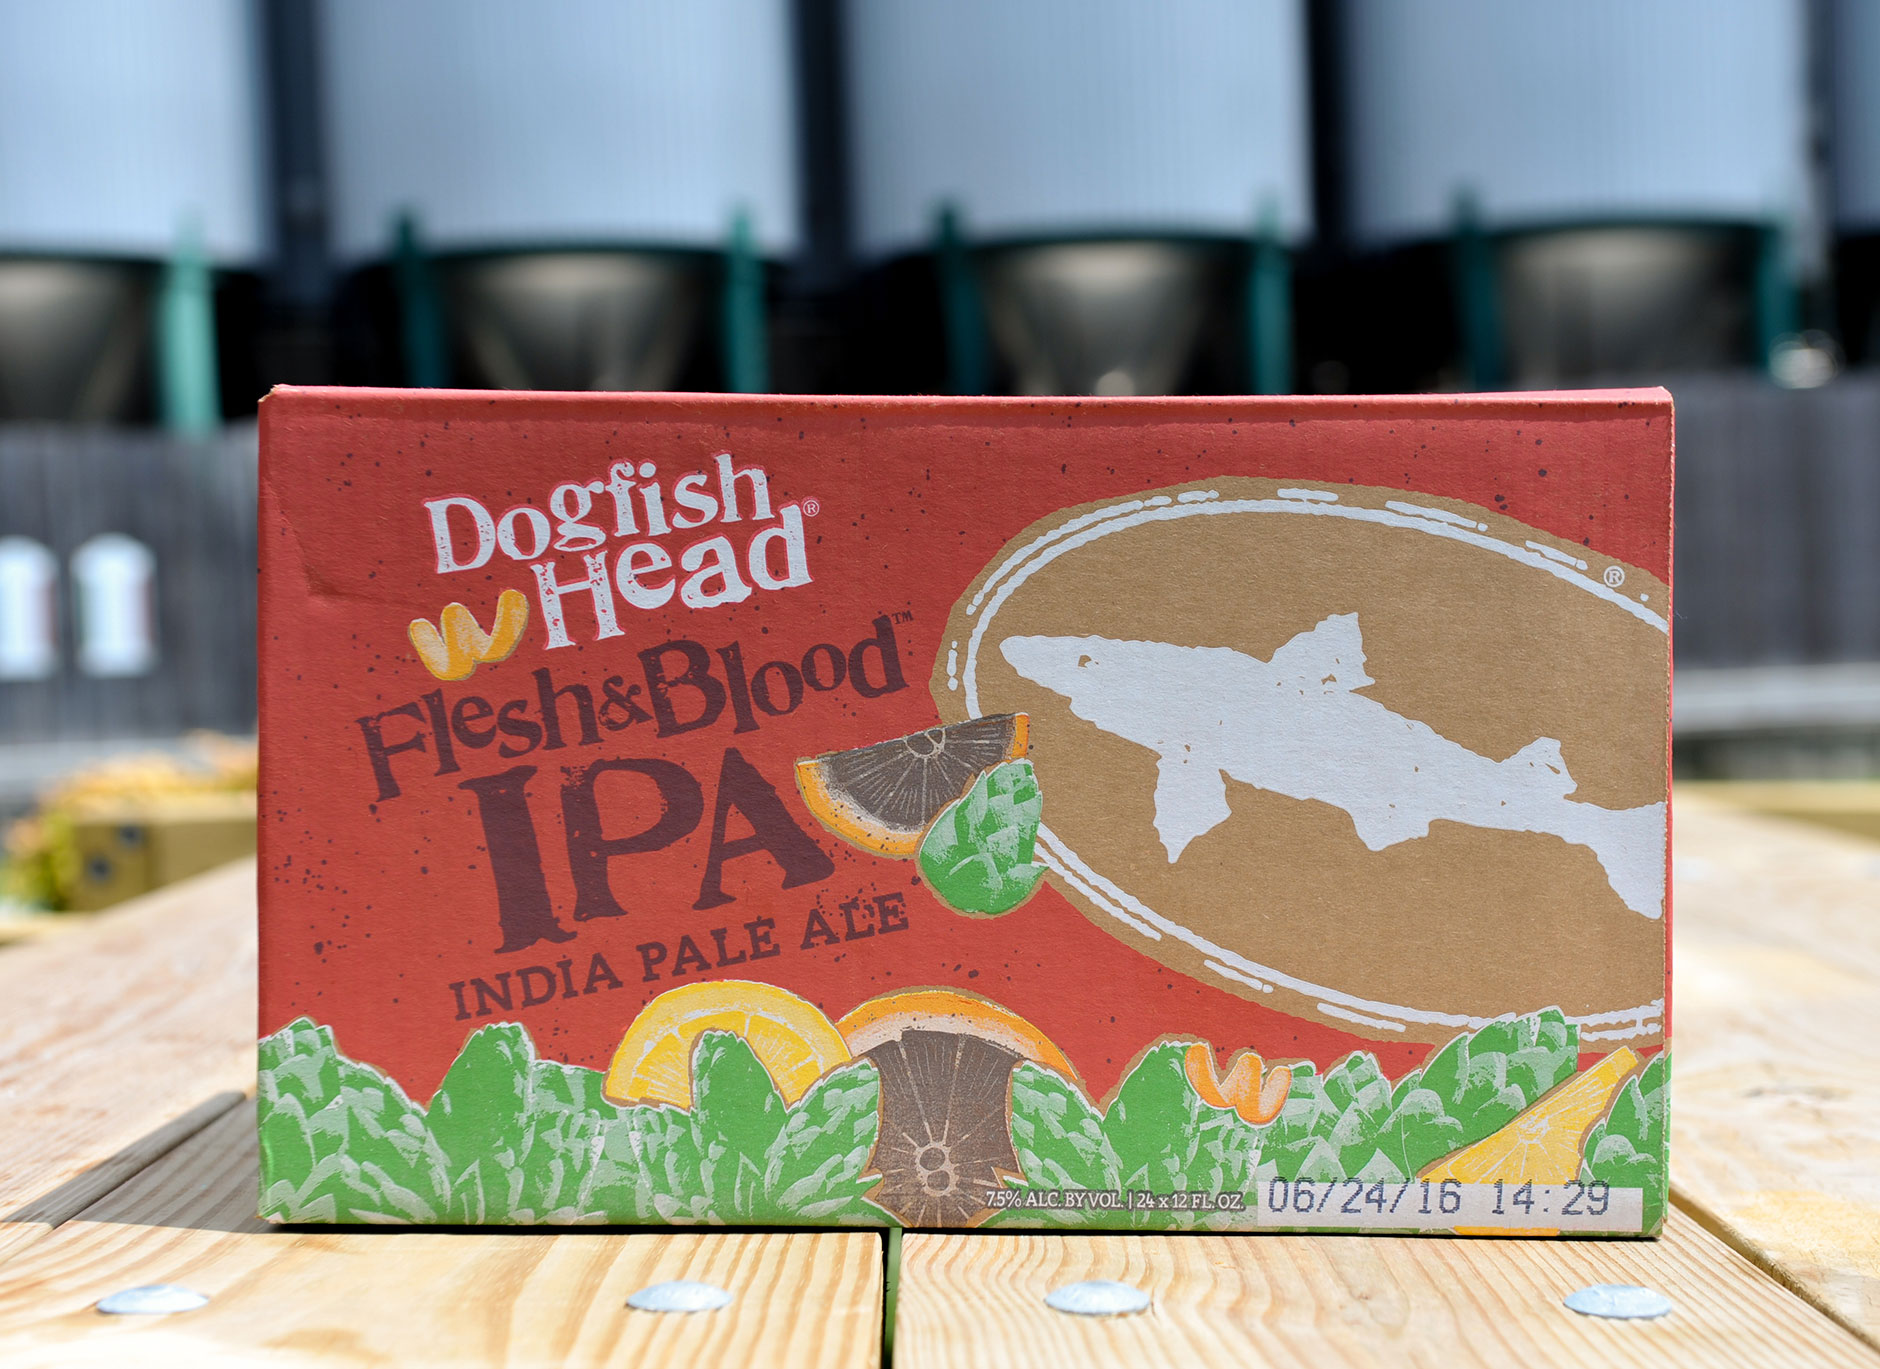 Flesh & Blood IPA